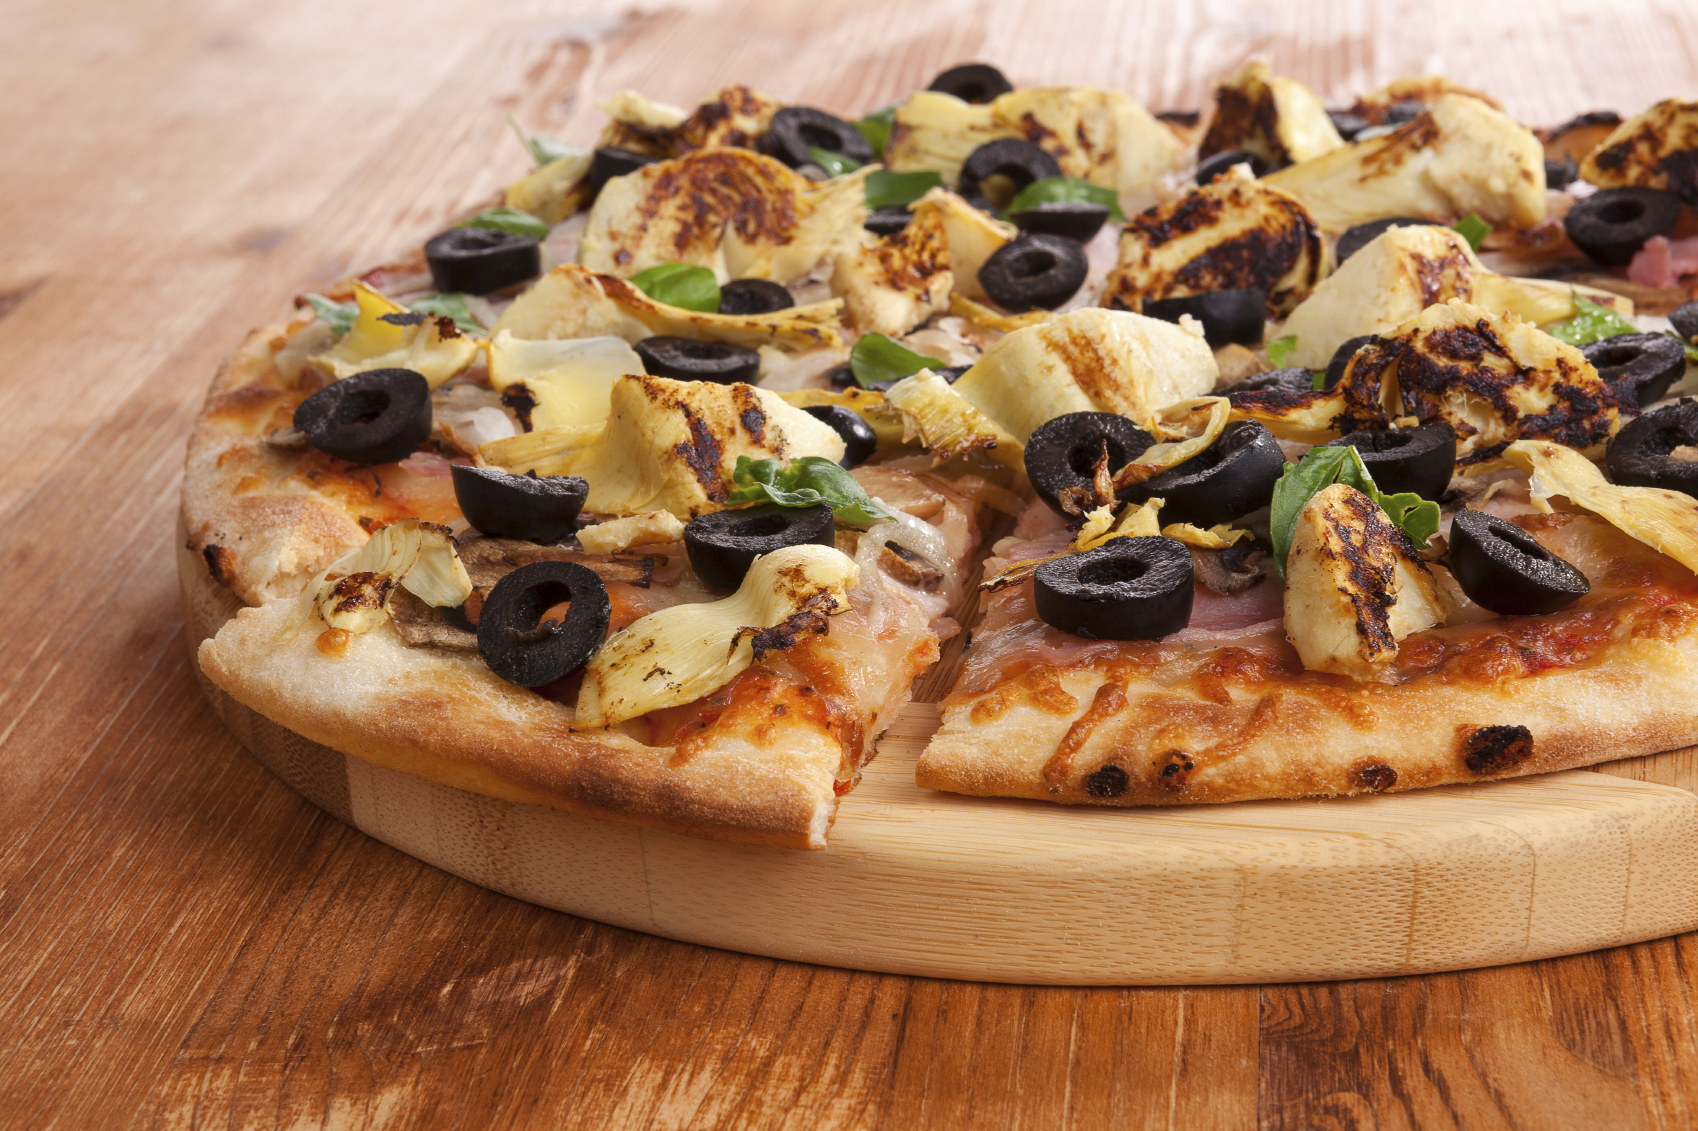 Pizza detail on wooden background. Italian cuisine, pizza with black olives, artichokes and ham. Culinary eating.